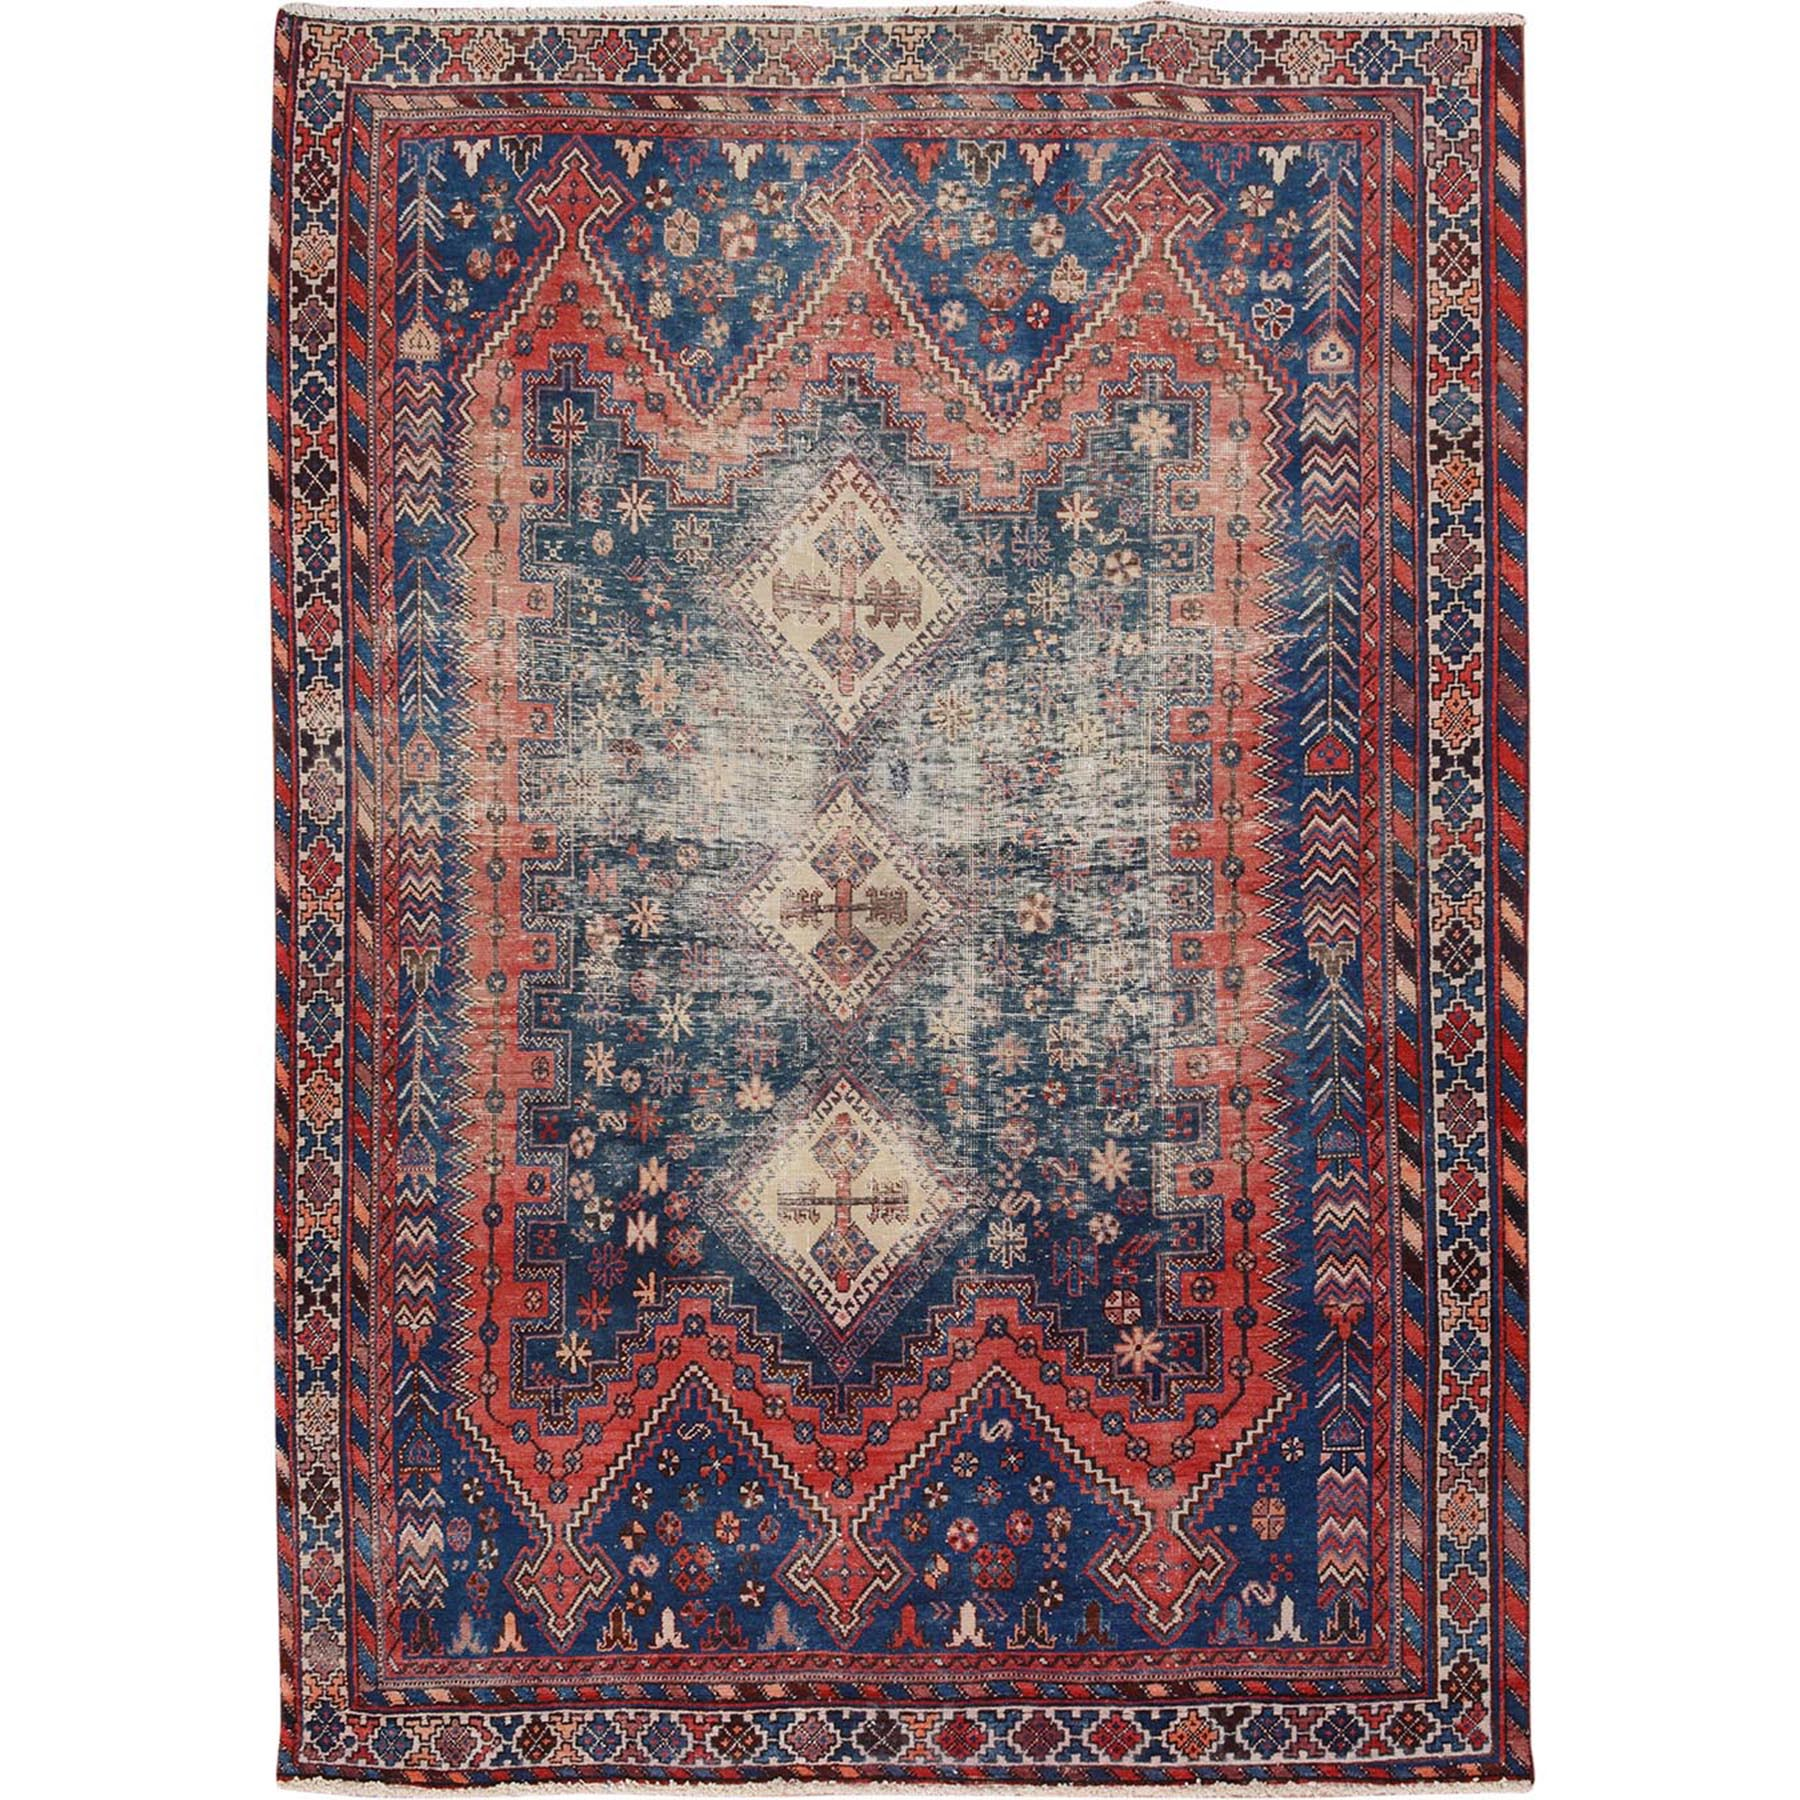 5'x7' Natural Colors Old and Worn Down Persian Shiraz Hand Woven Oriental Rug